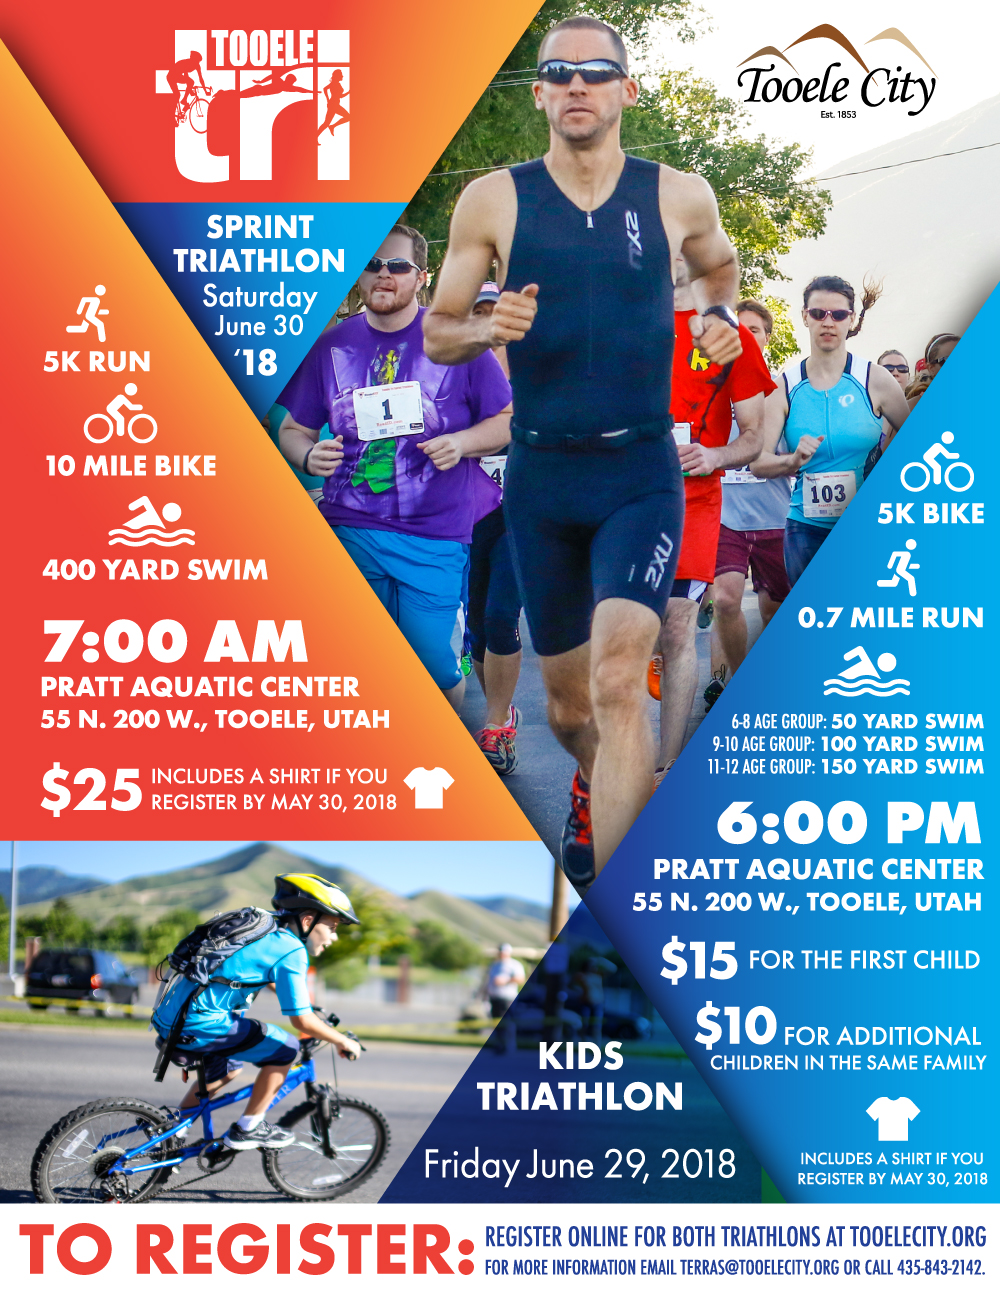 Tooele Tri:  Kids Triathlon 2018 @ Pratt Aquatic Center | Tooele | Utah | United States